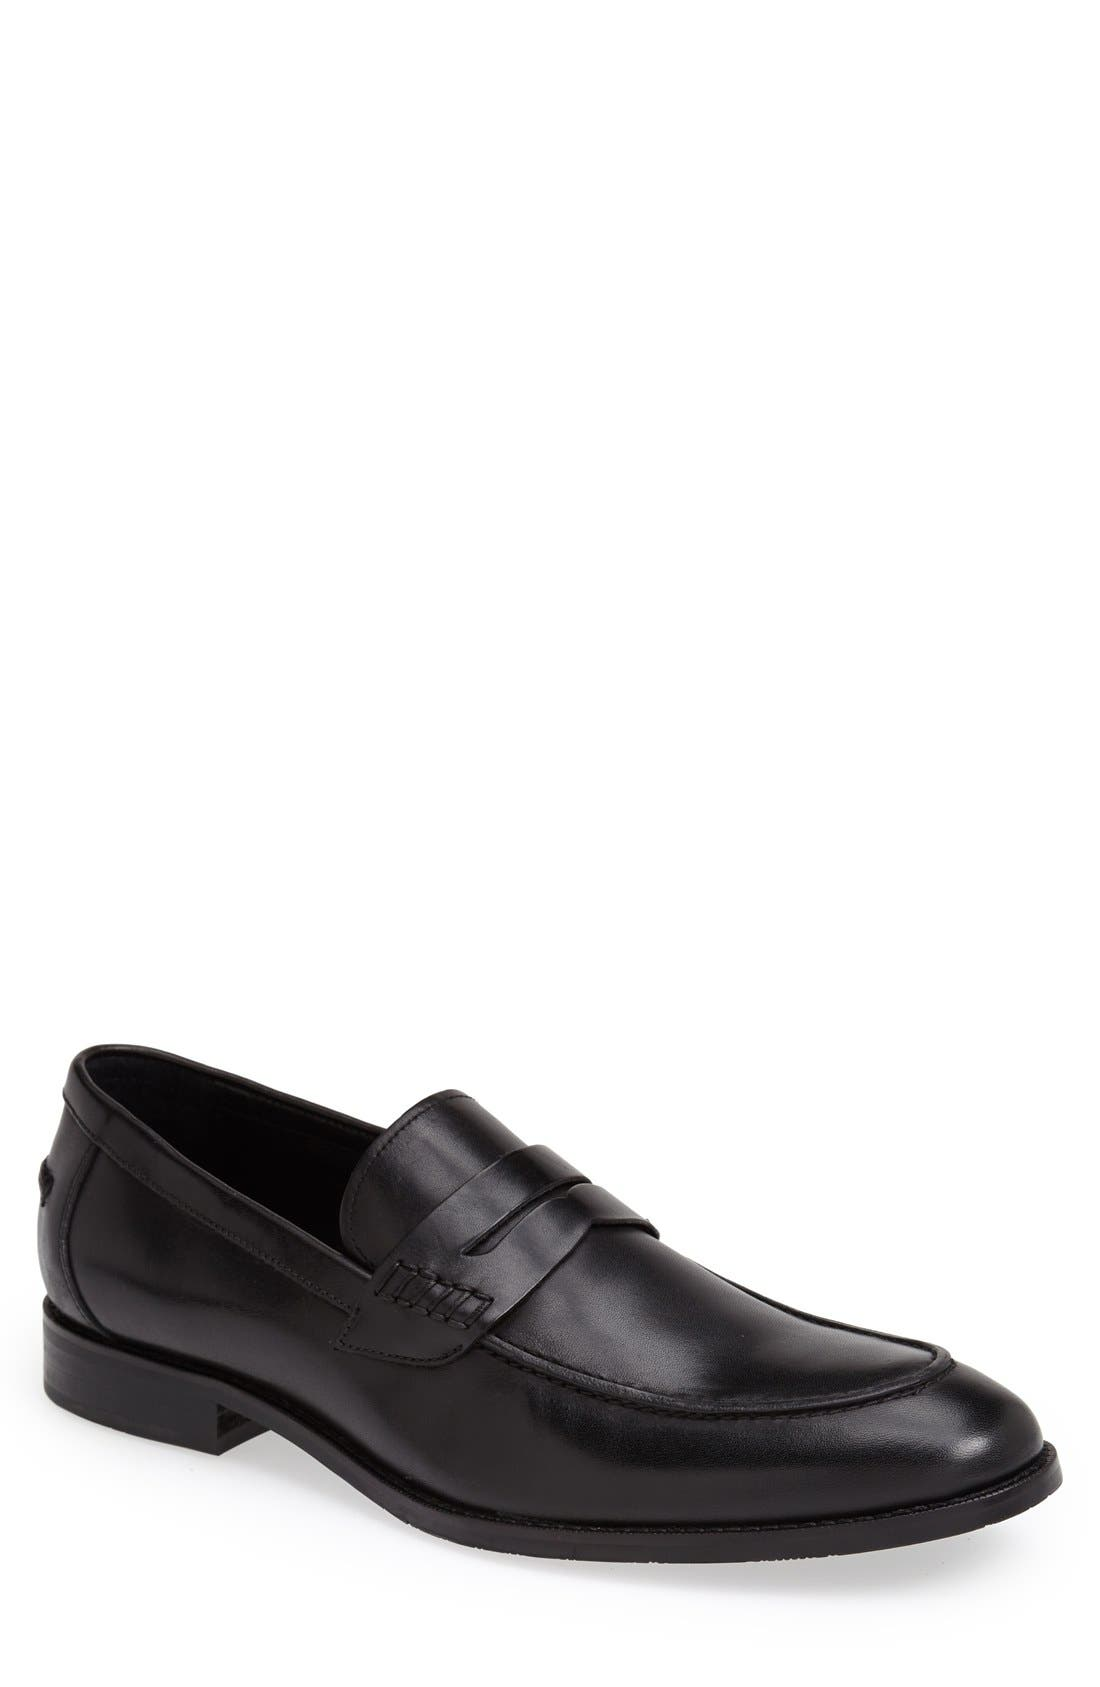 GORDON RUSH Conway Penny Loafer